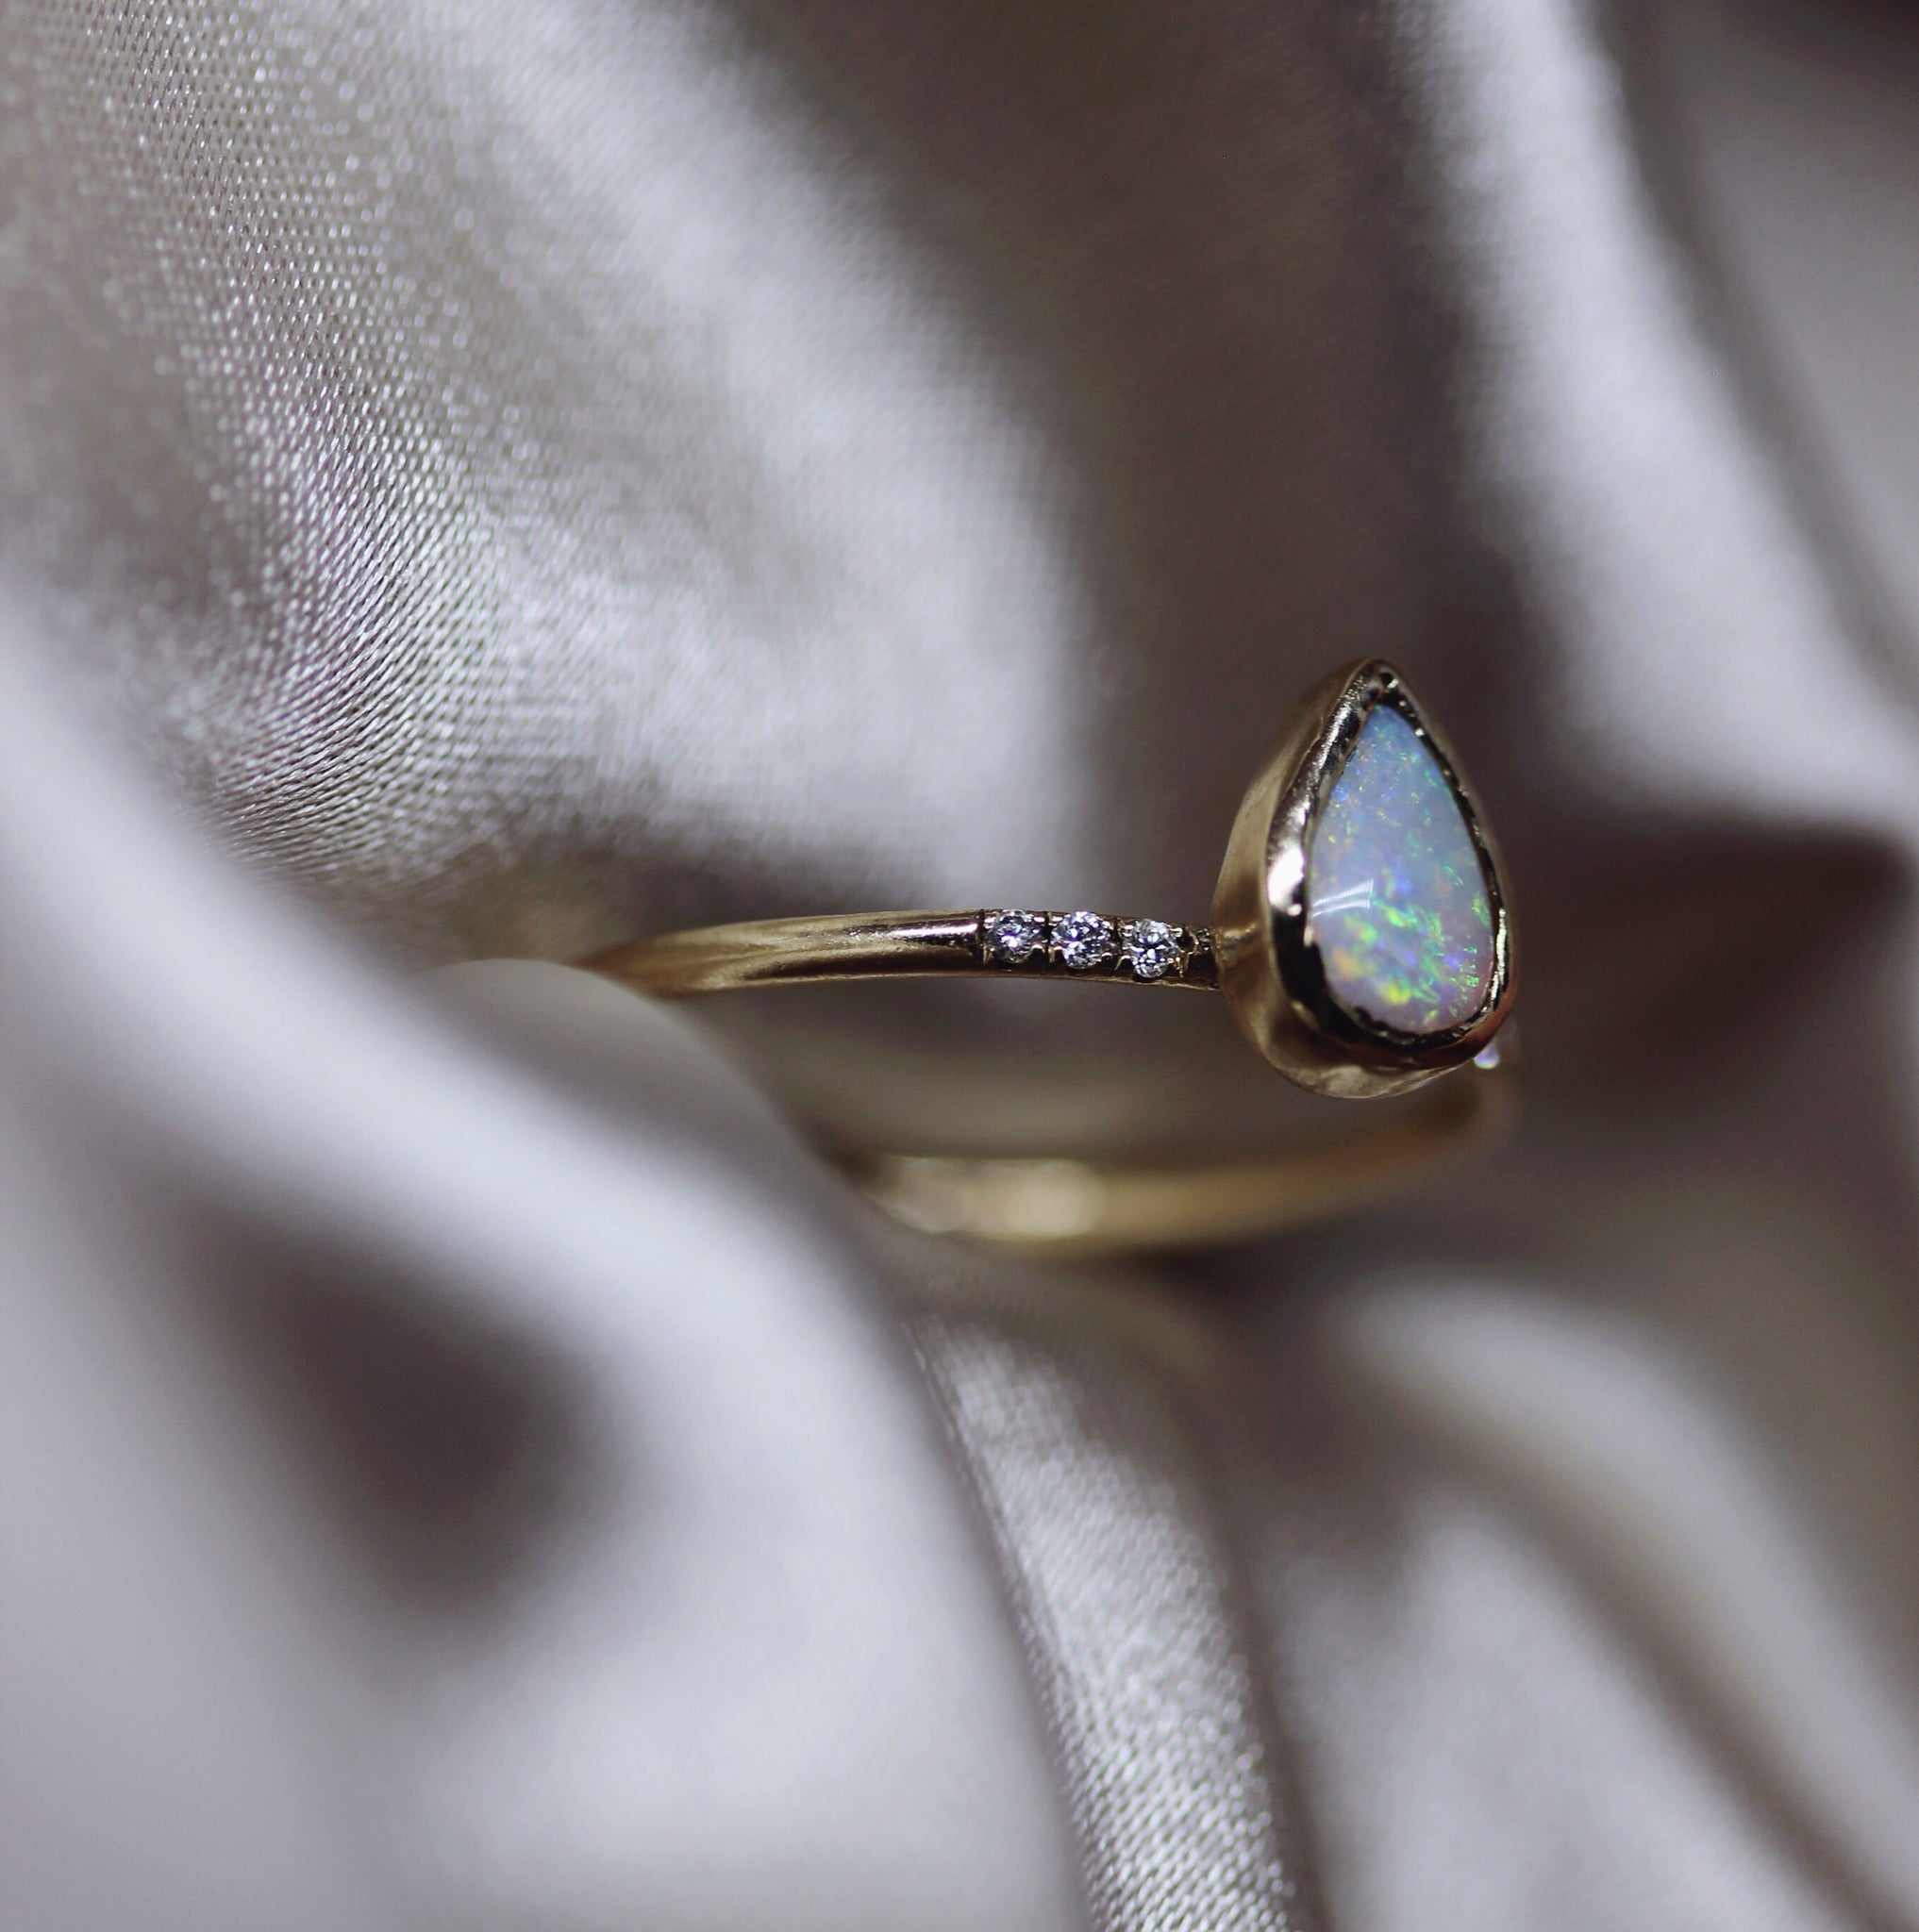 2 1 0 // diamond x teardrop opal ring